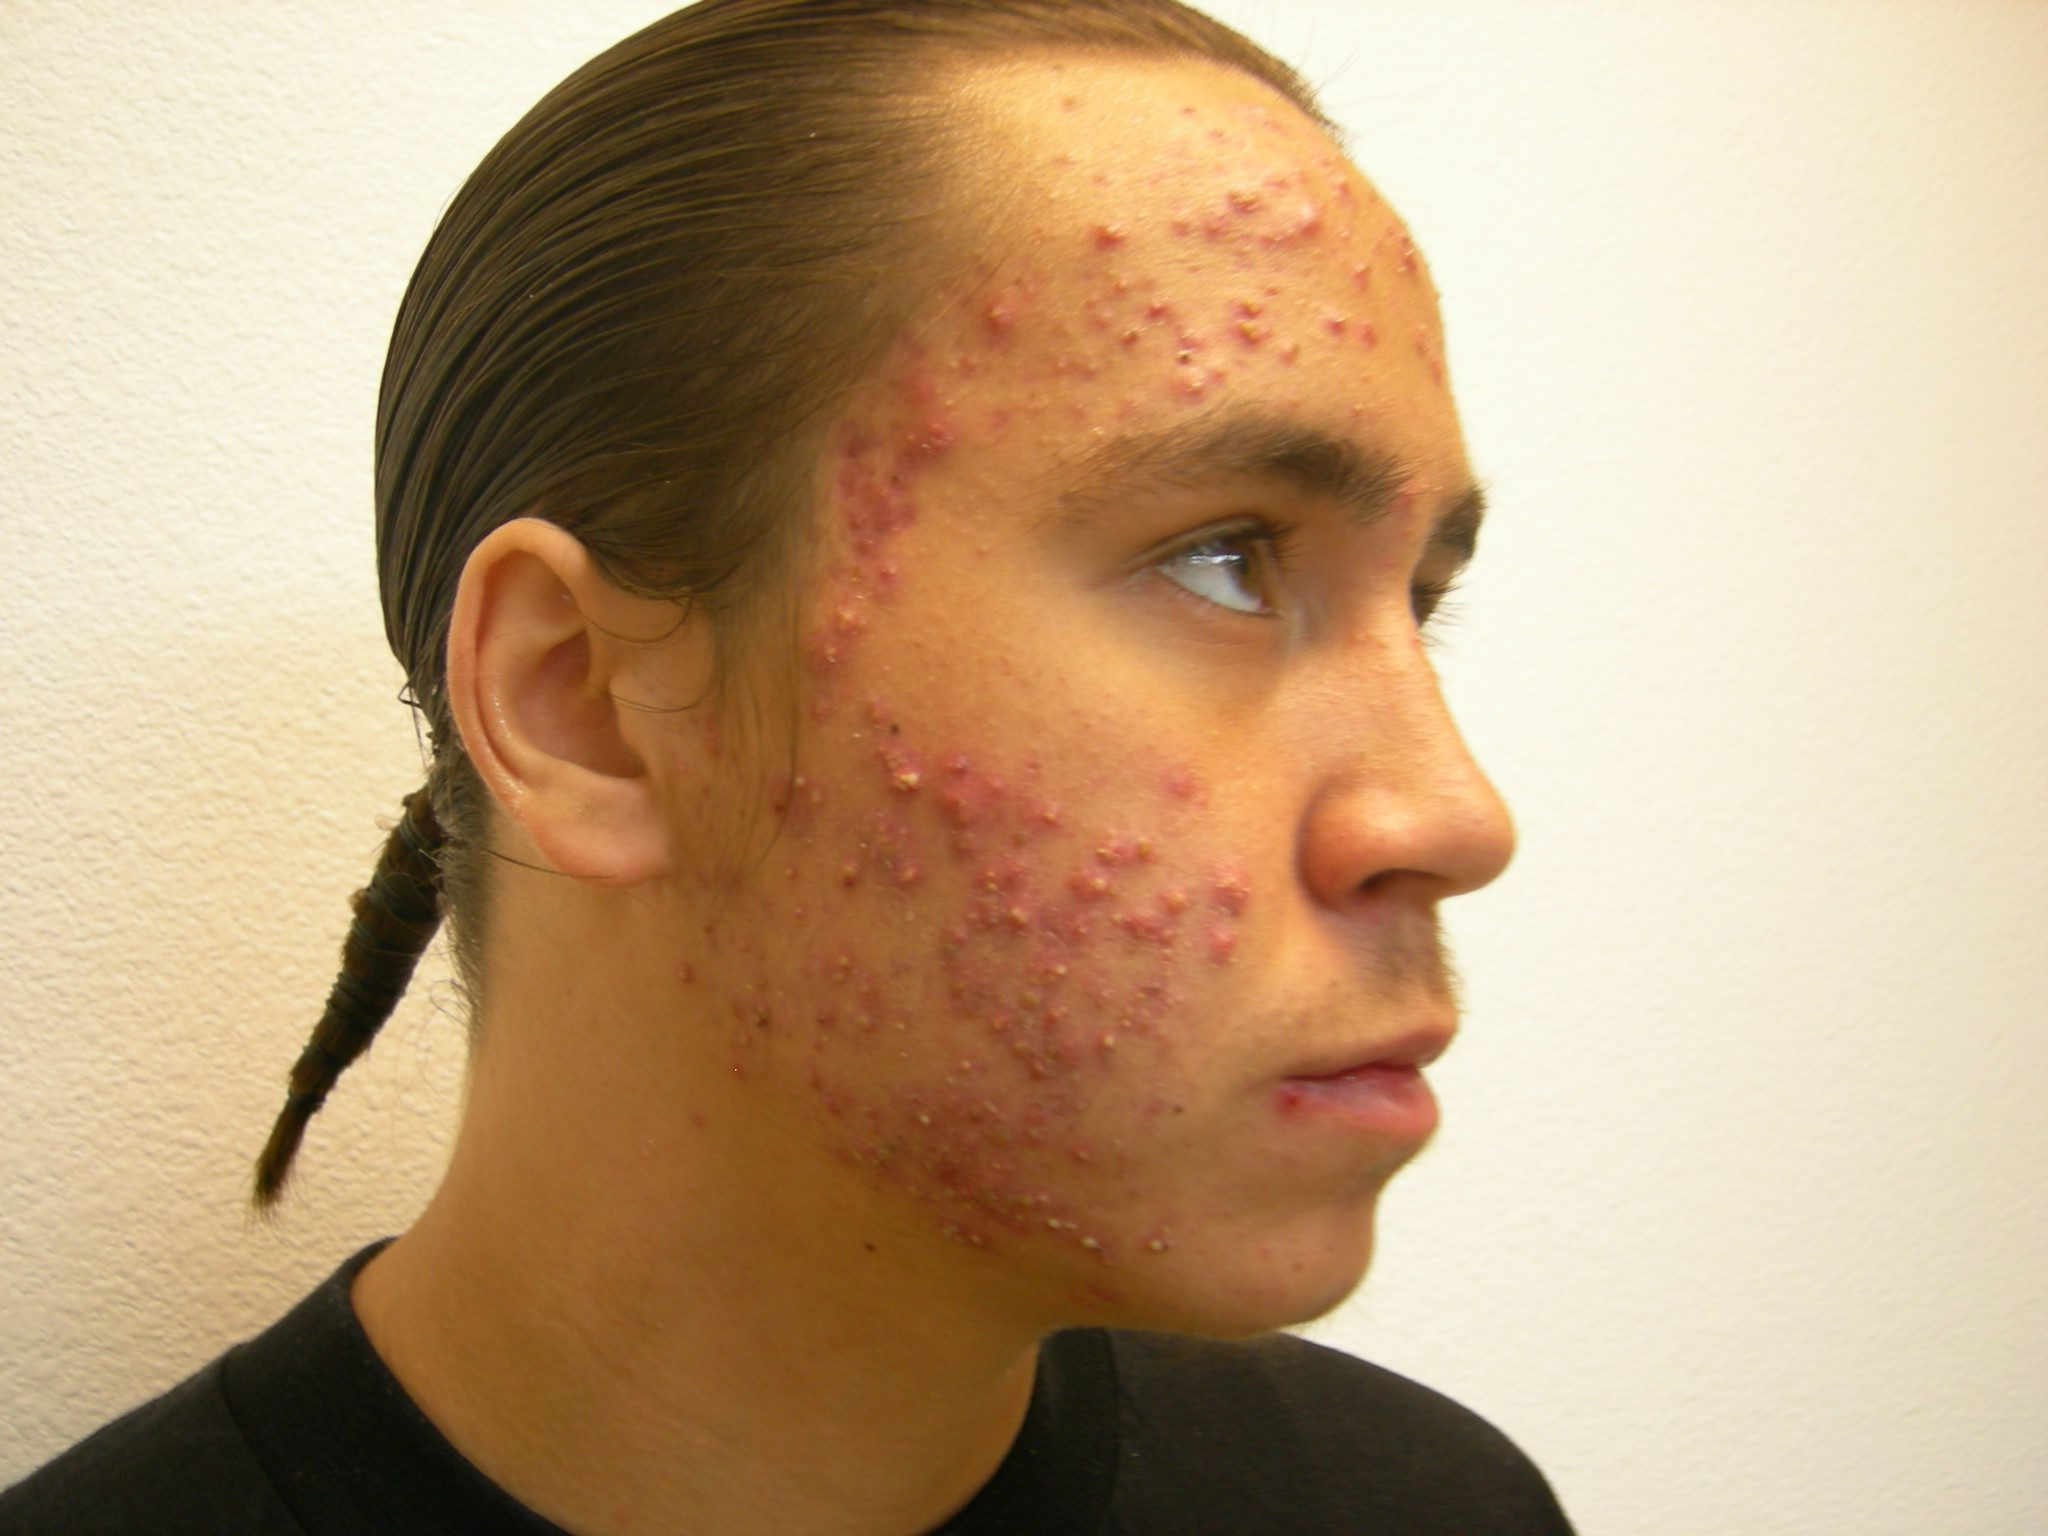 Before-Acne Scars and Scar Treatment